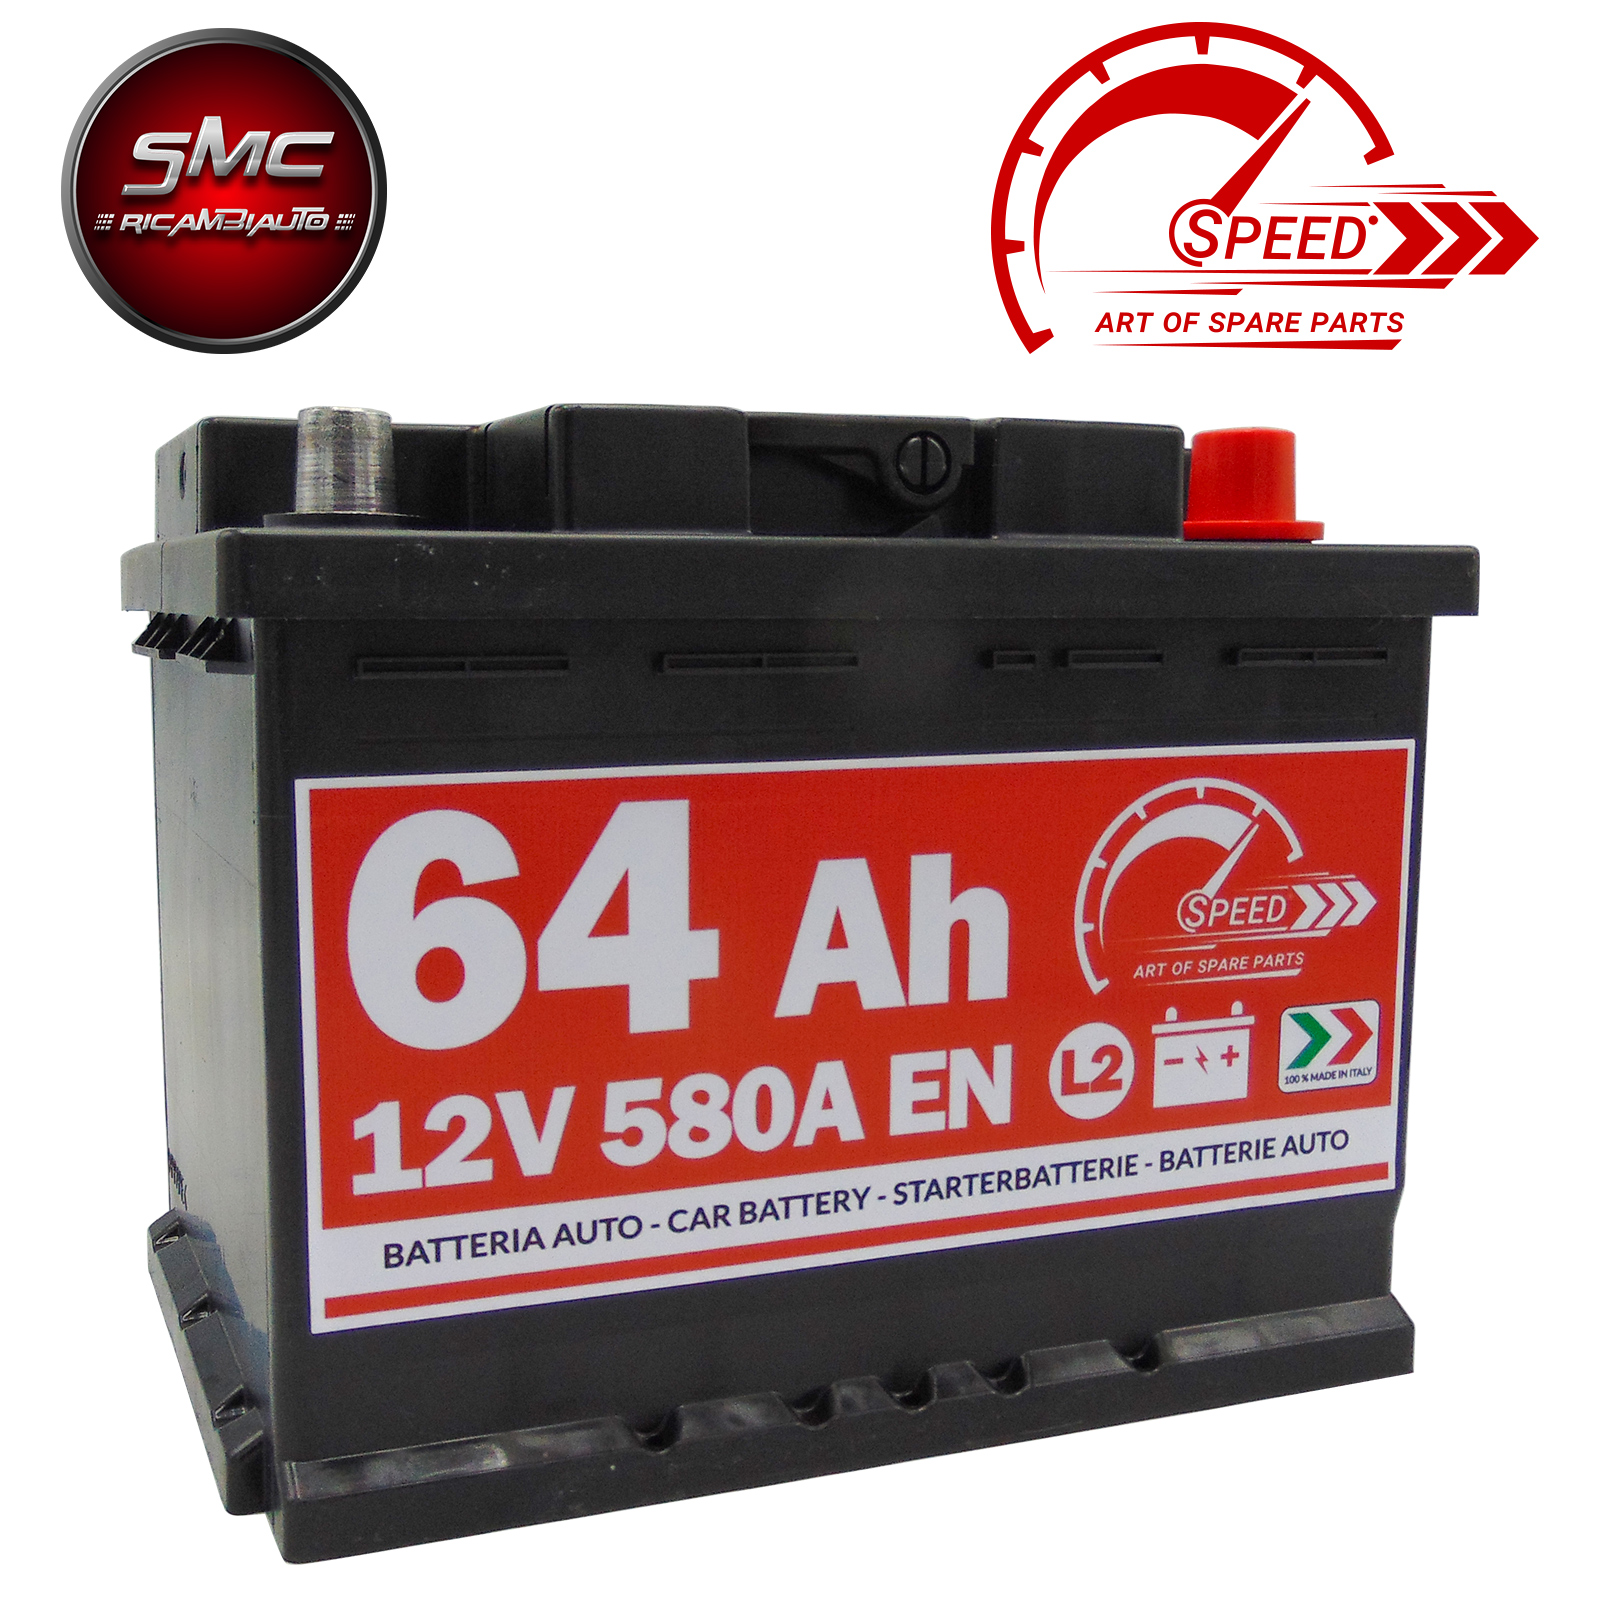 BATTERIA SPEED L264 64AH 580A 12V